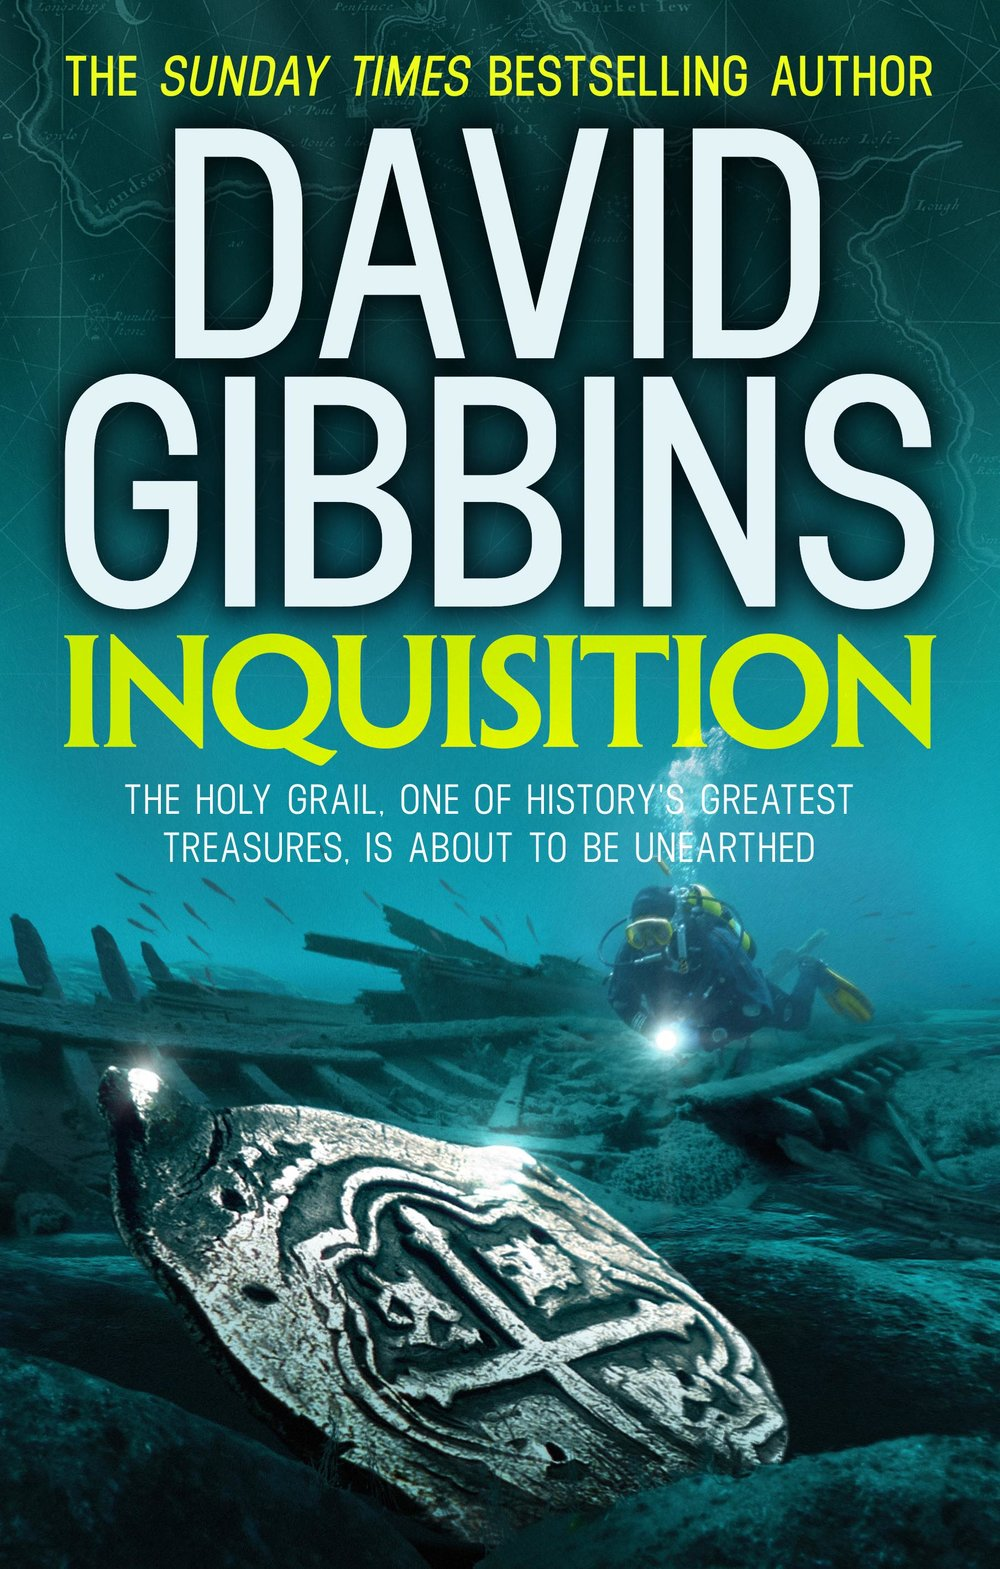 Inquisition final UK cover design medium.jpg